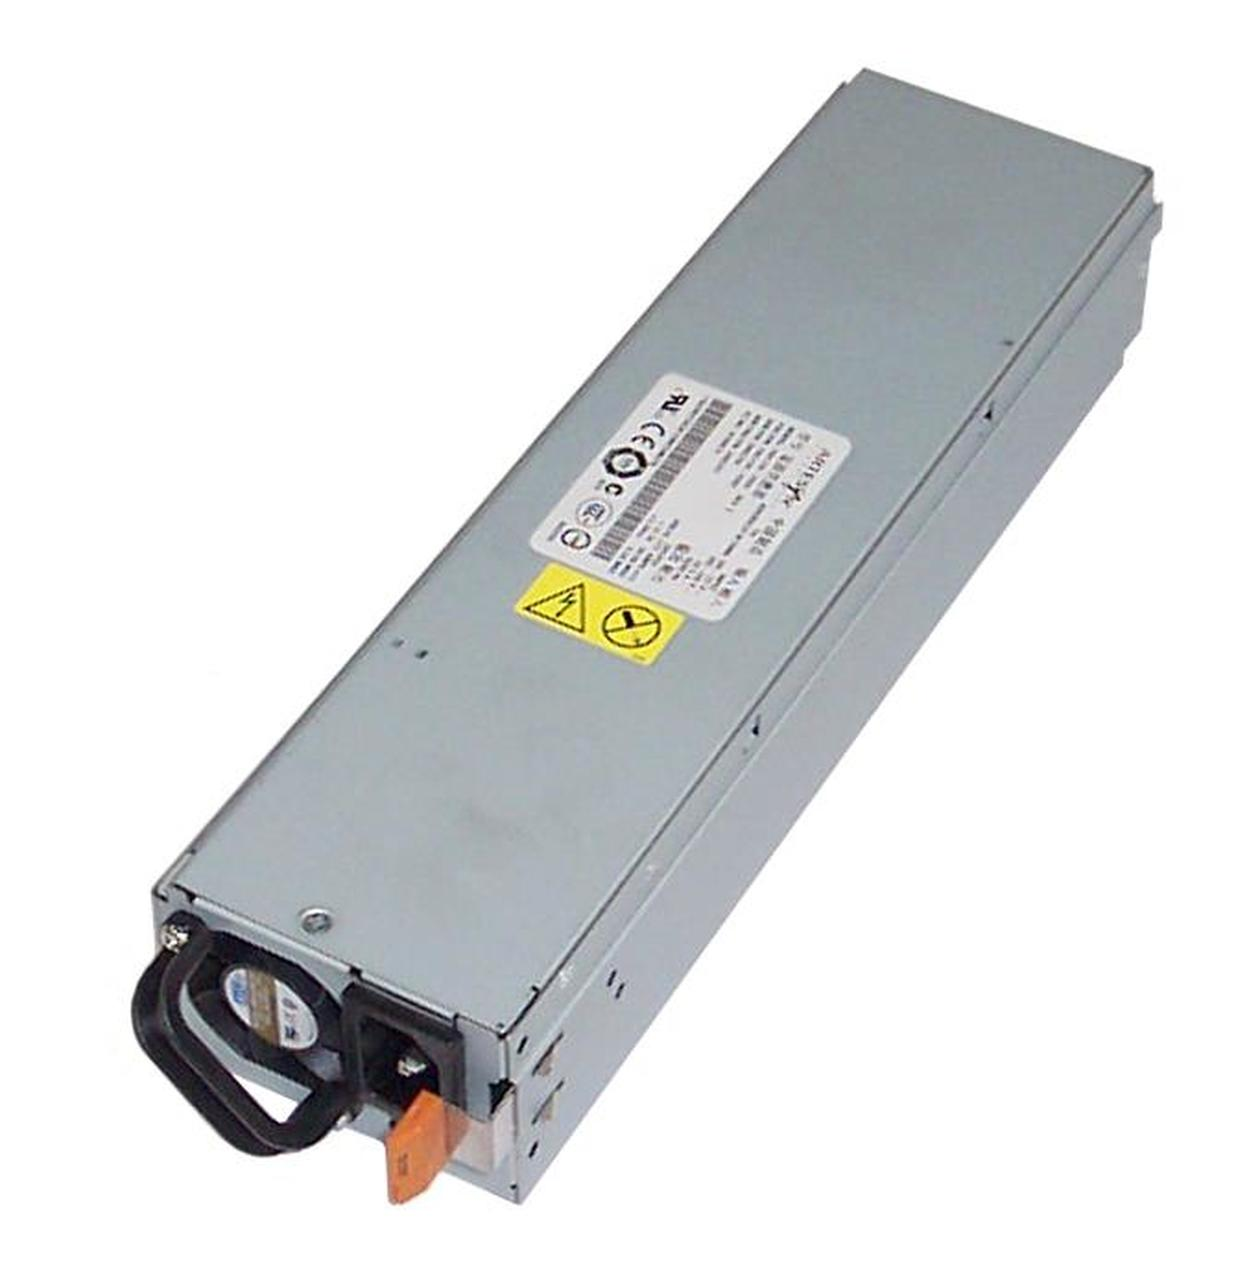 39Y7191 IBM 700-Watts DC Power Supply for System x3650